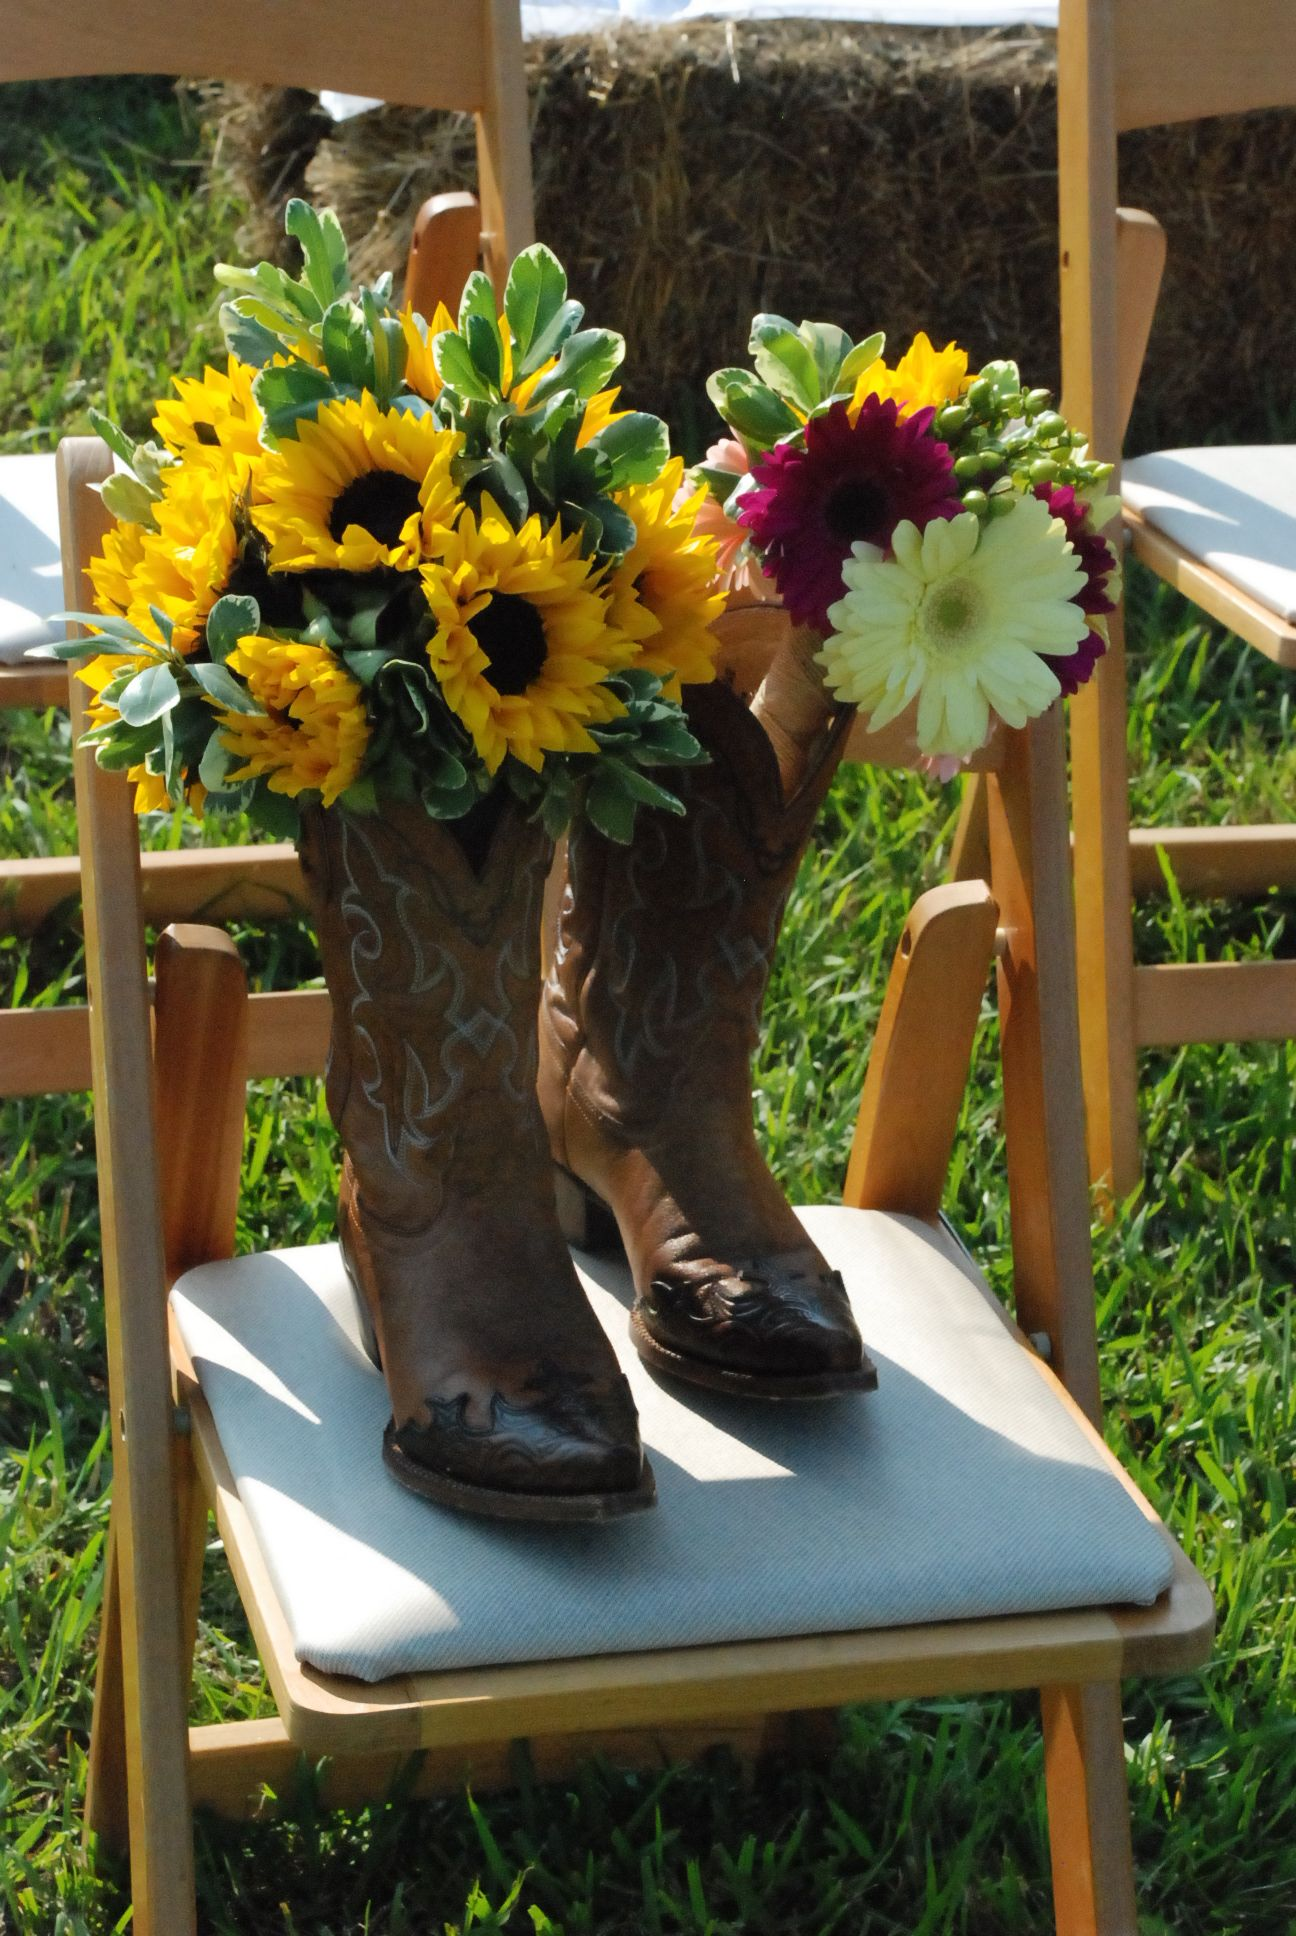 †♥ ✞ ♥† recycle cowboy boots  †♥ ✞ ♥†